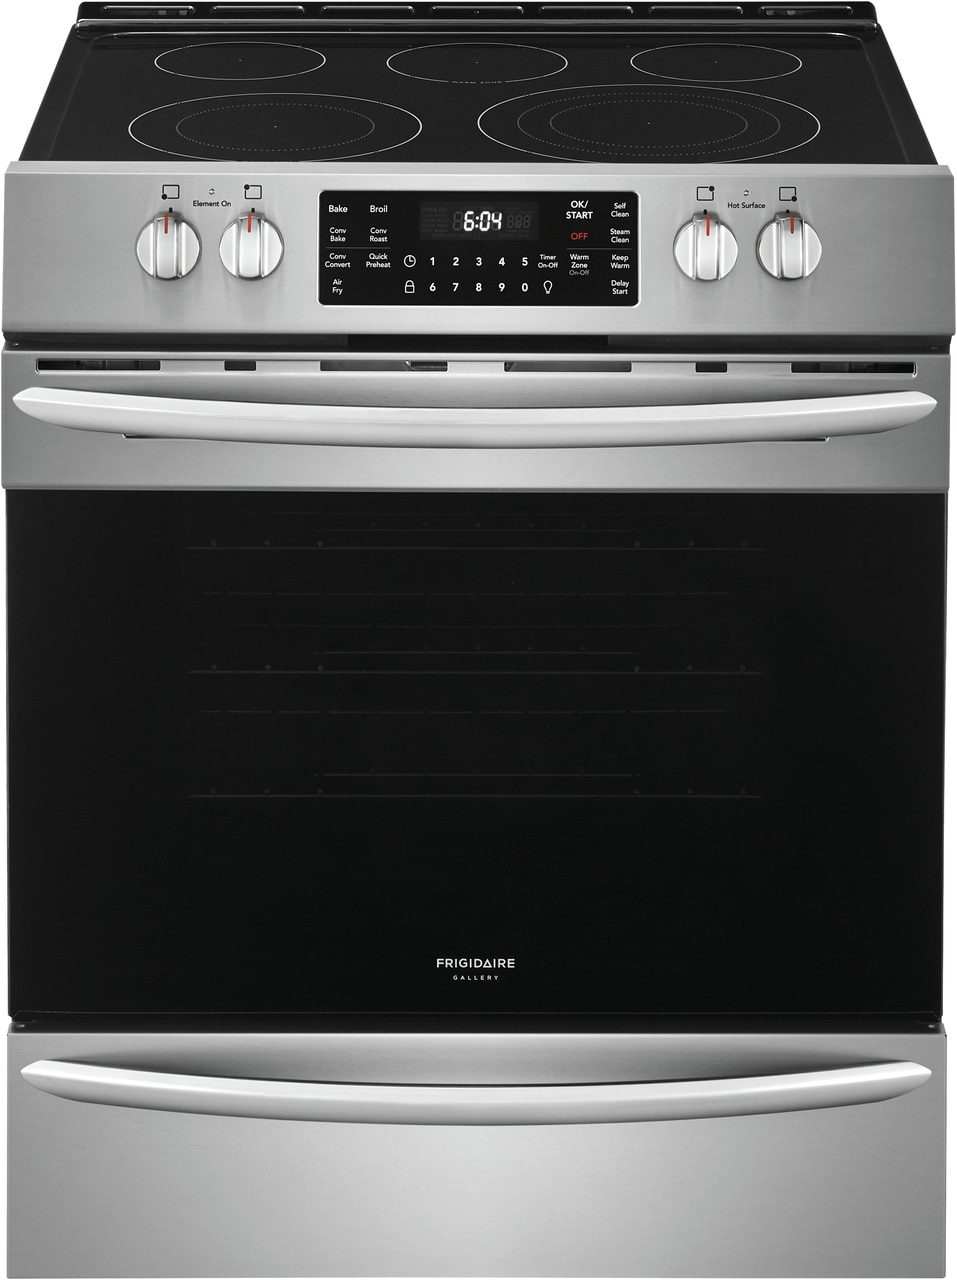 "Frigidaire Gallery 30"" Front Control Electric Range with Air Fry"